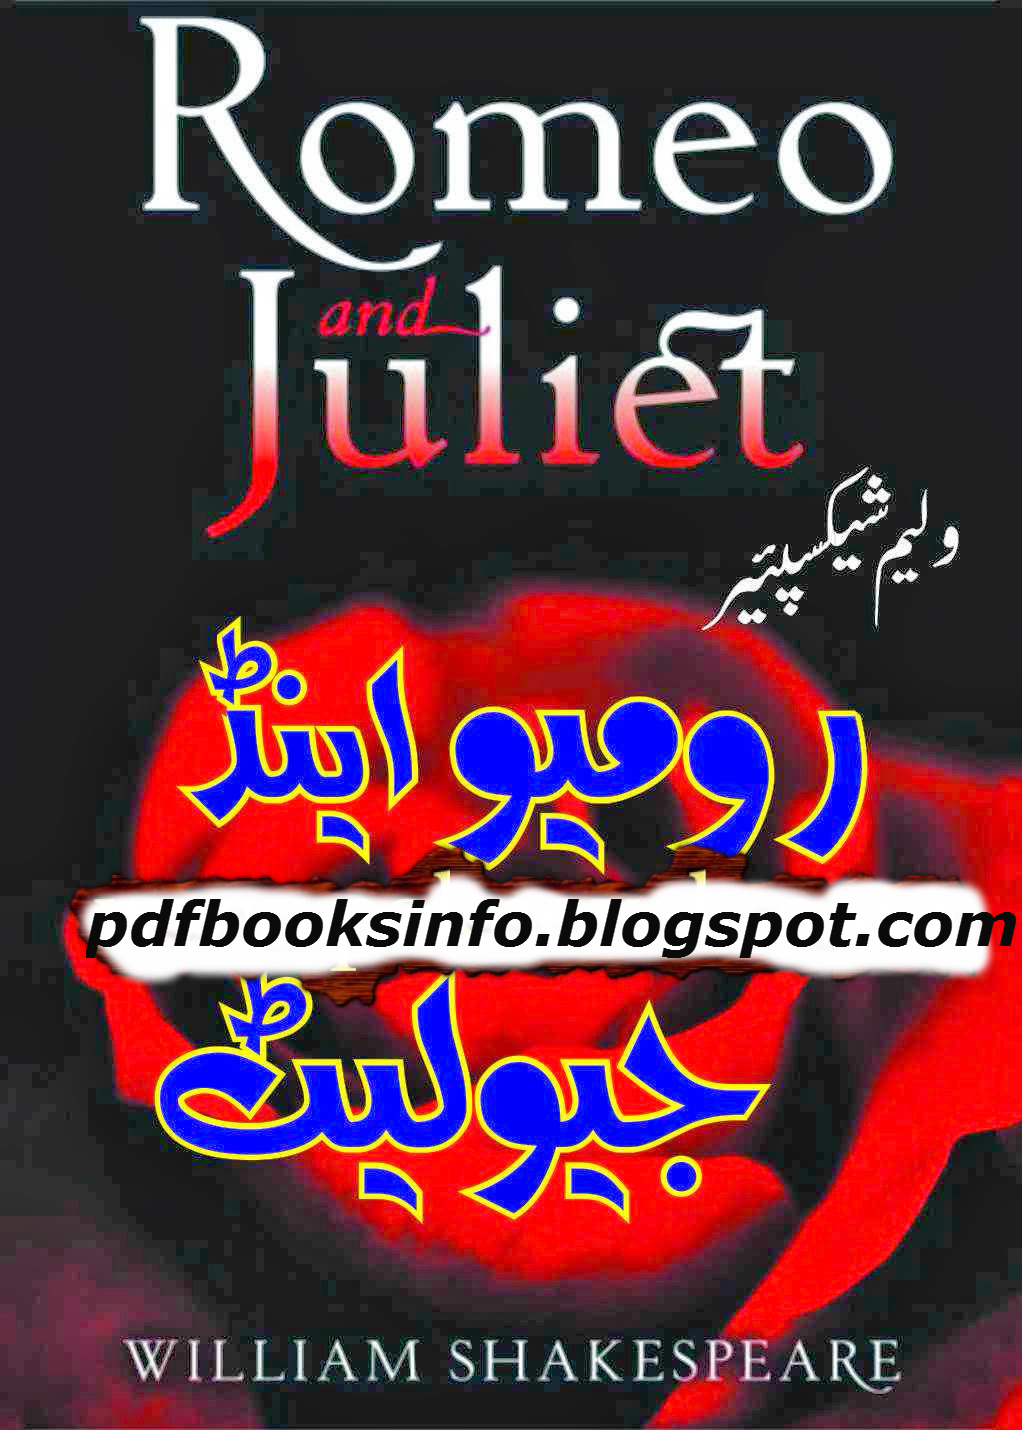 And online book juliet romeo